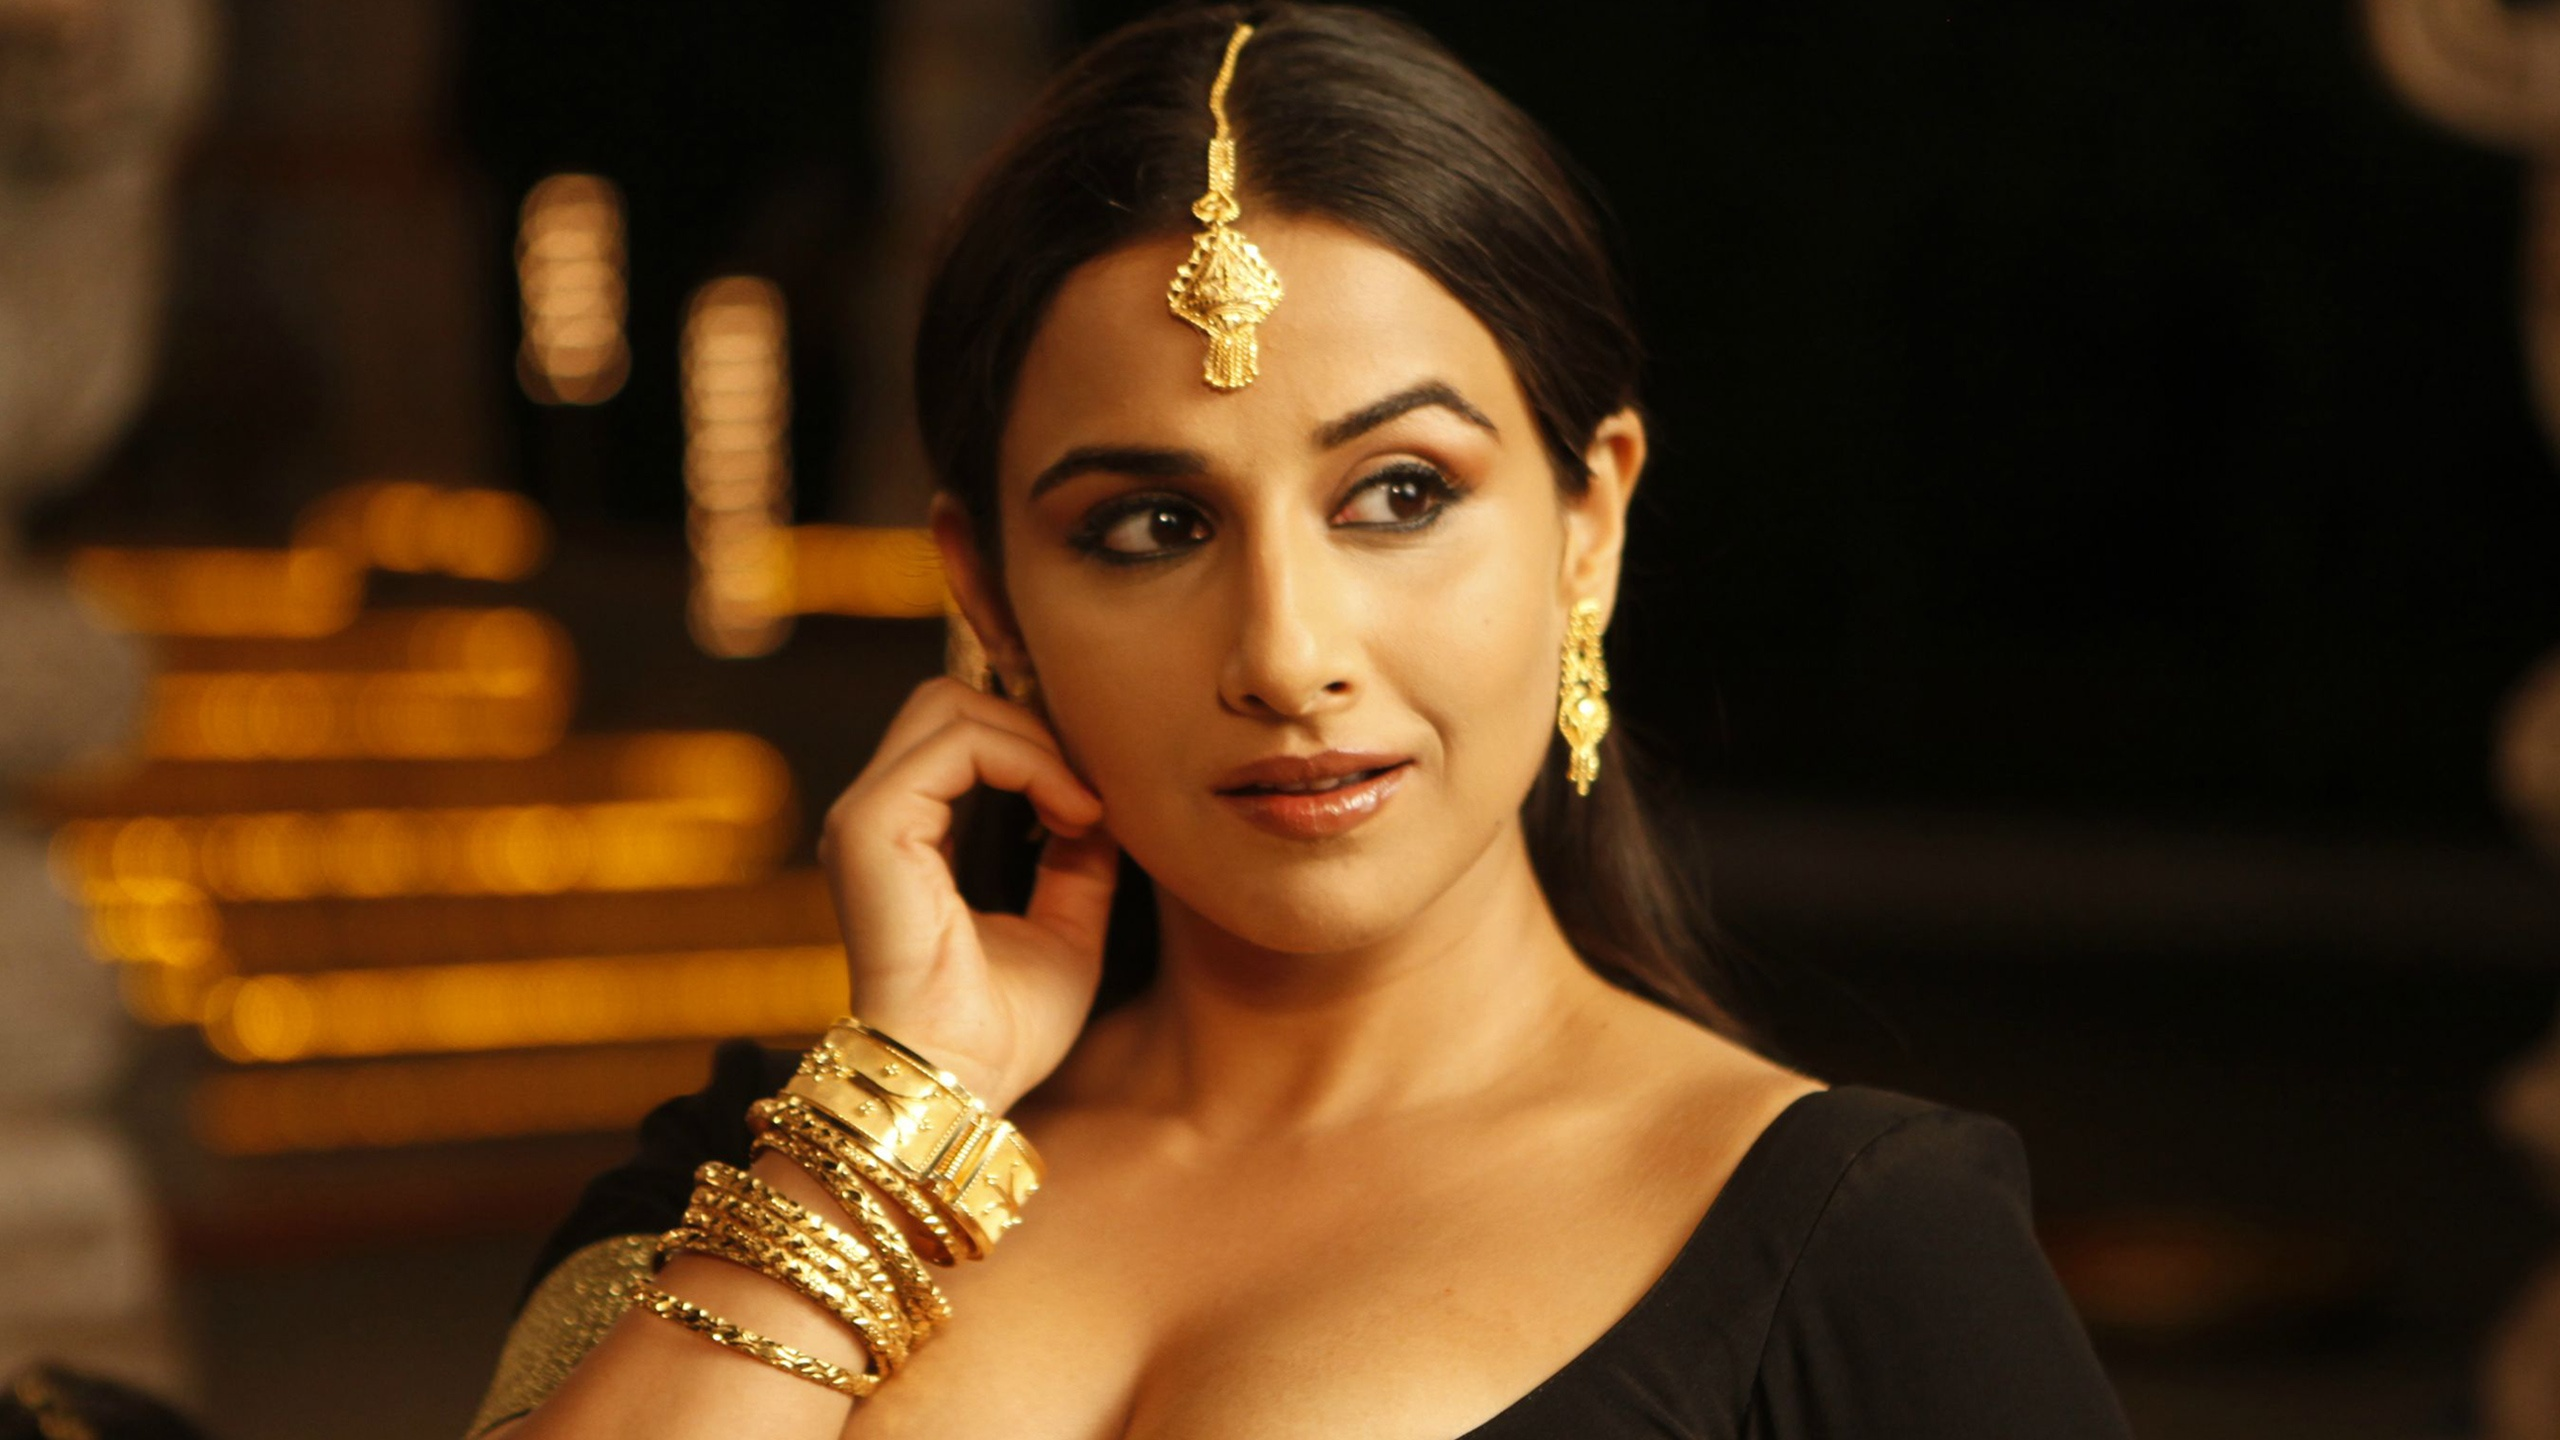 Vidya Balan In The Dirty Picture Wallpapers In Jpg Format For Free